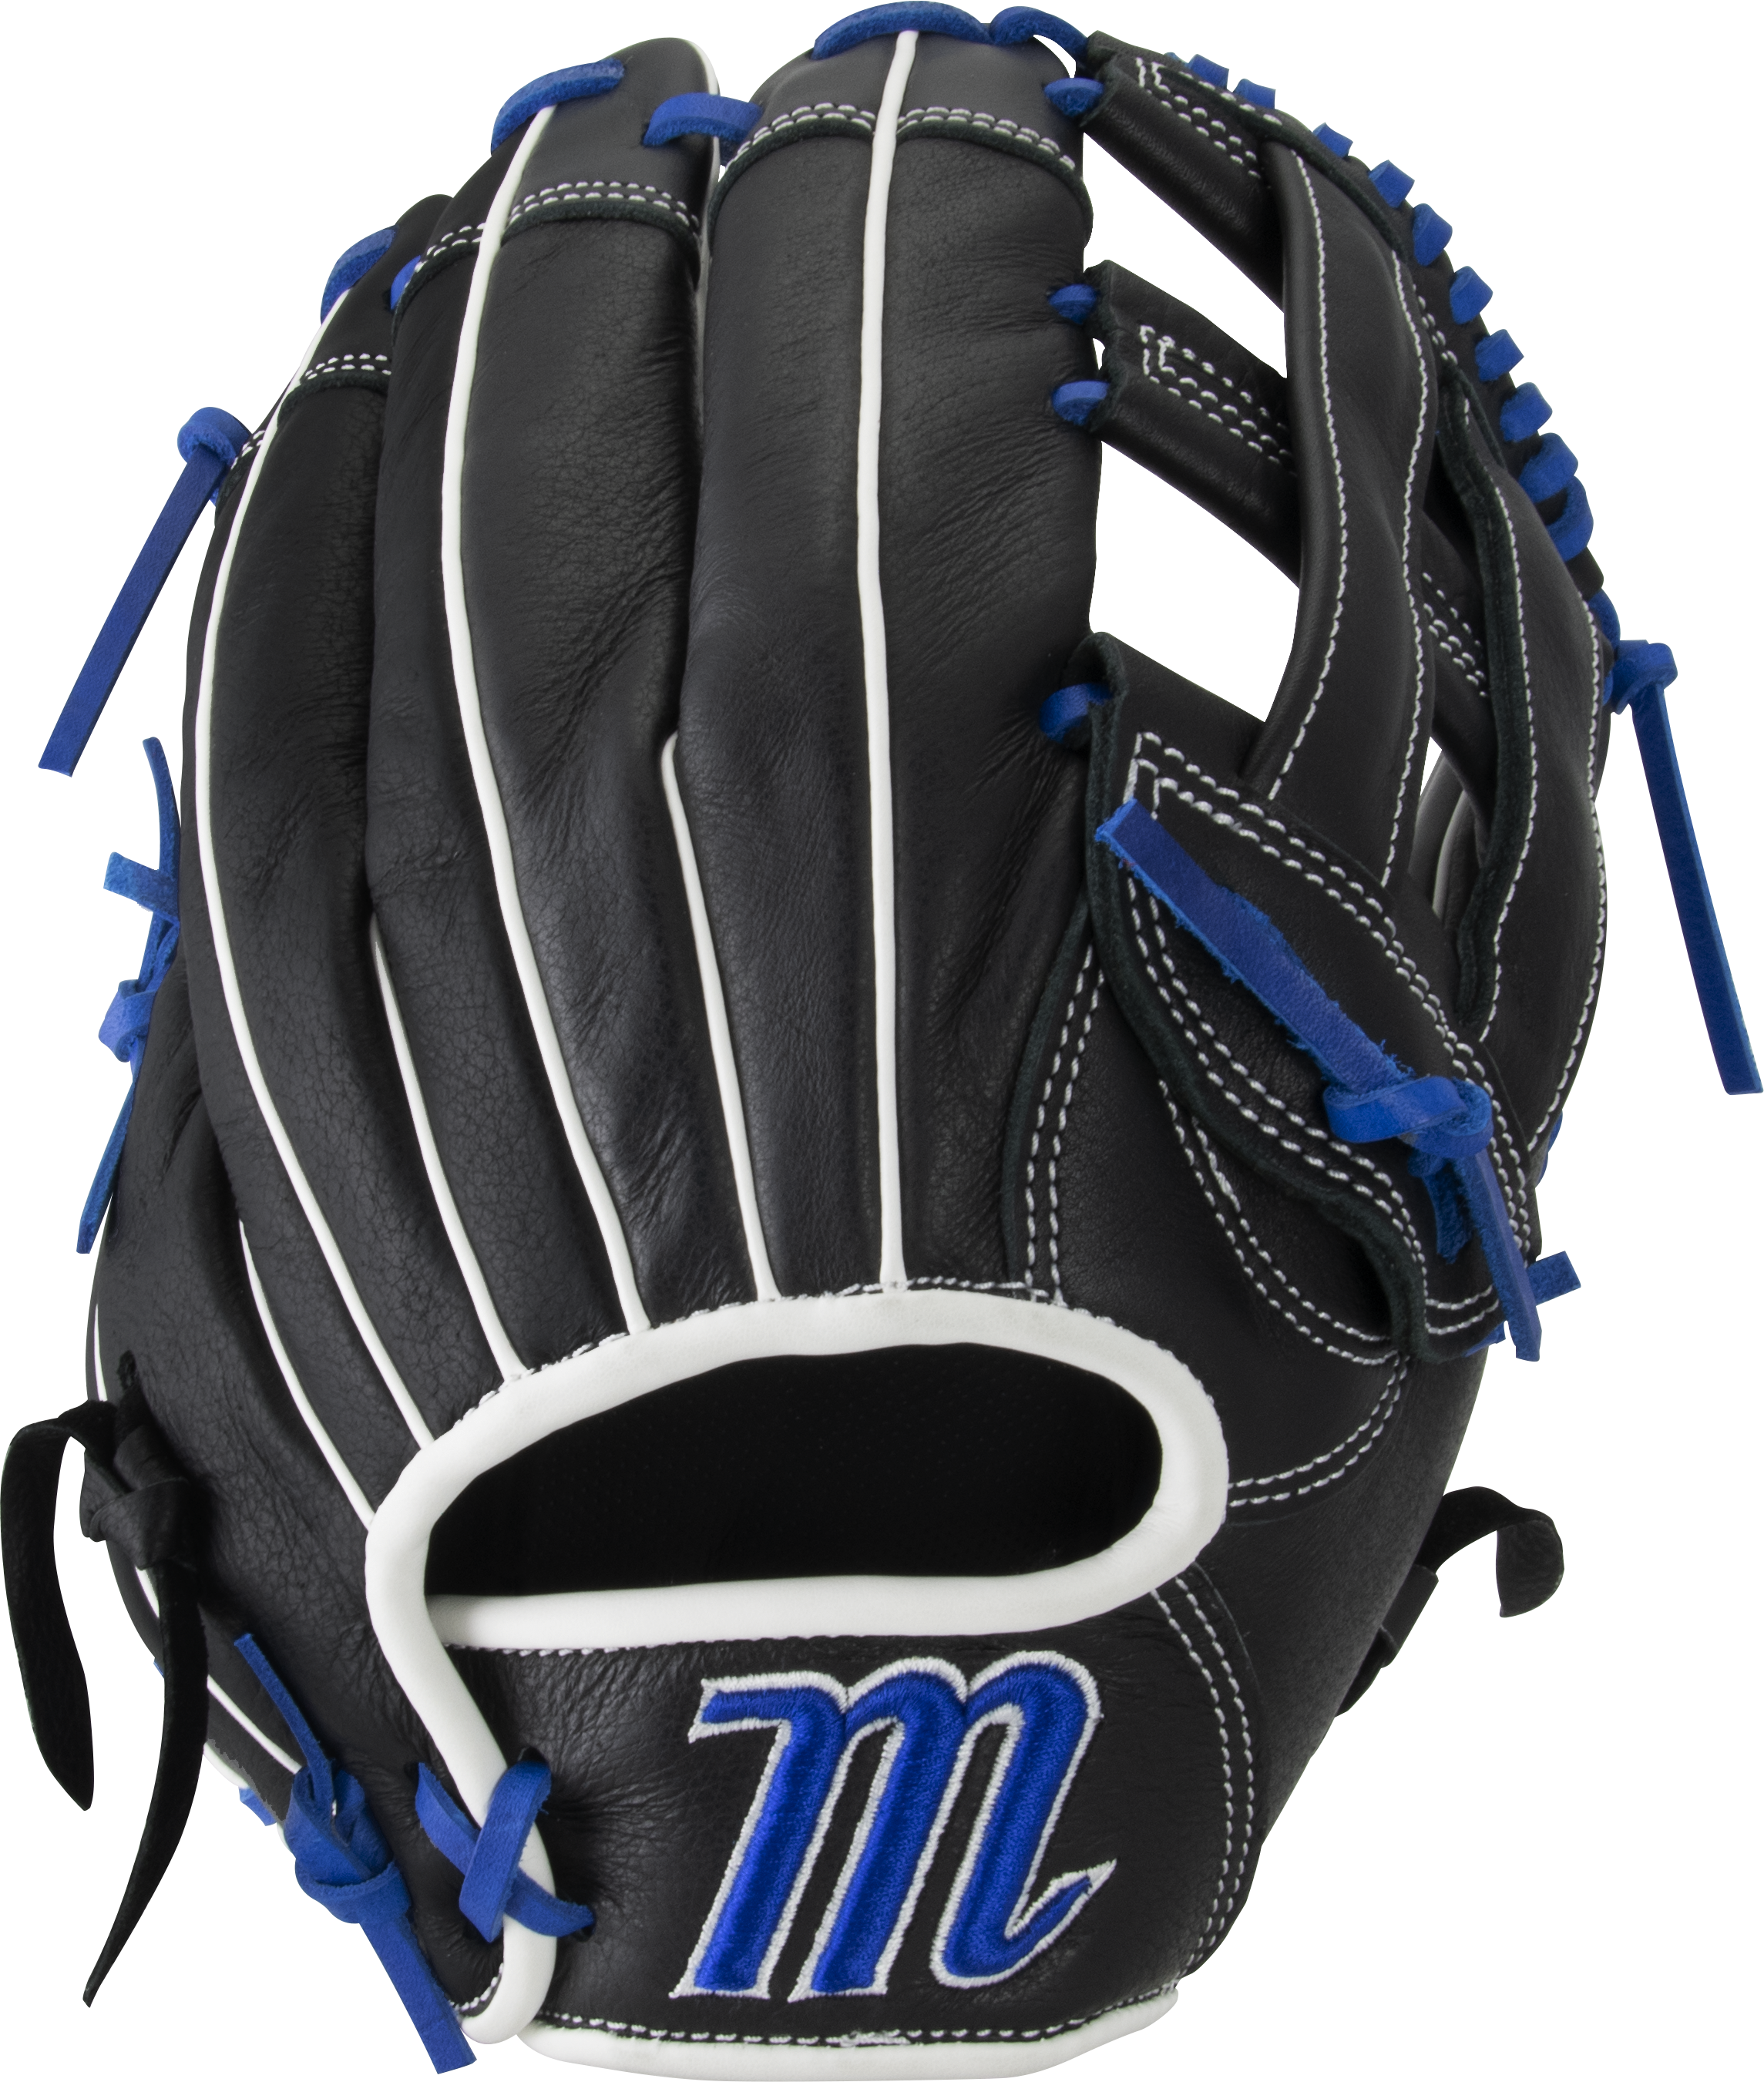 marucci-acadia-youth-baseball-glove-ac125y-12-5-h-web-right-hand-throw MFGAC125Y-BKRB-RightHandThrow Marucci 849817099766 Full leather shell provides strength while padded palm lining reduces weight